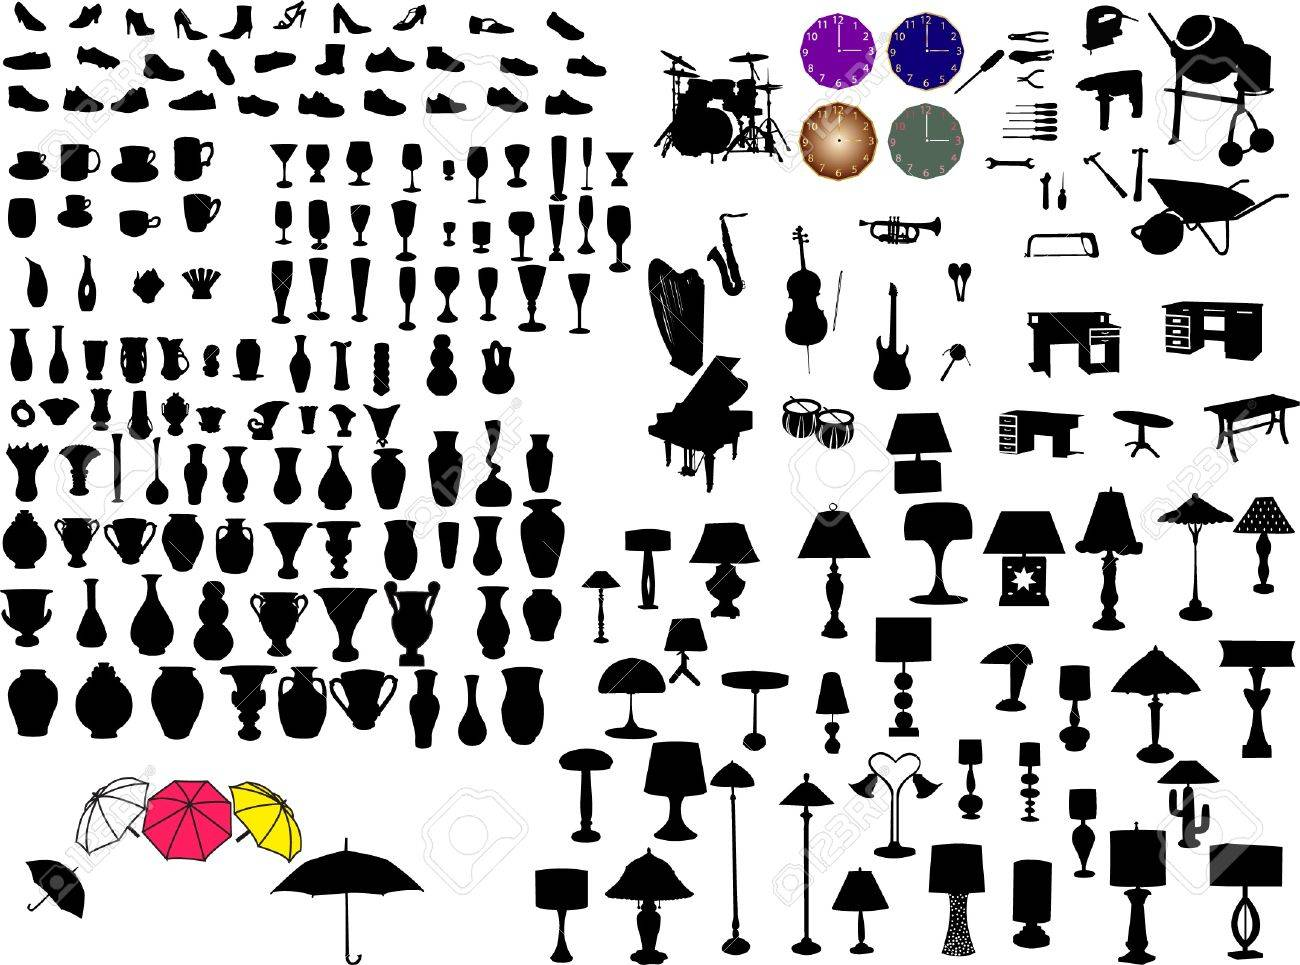 Antique chair silhouette - Vector Big Collection Of Objects Silhouette Vector